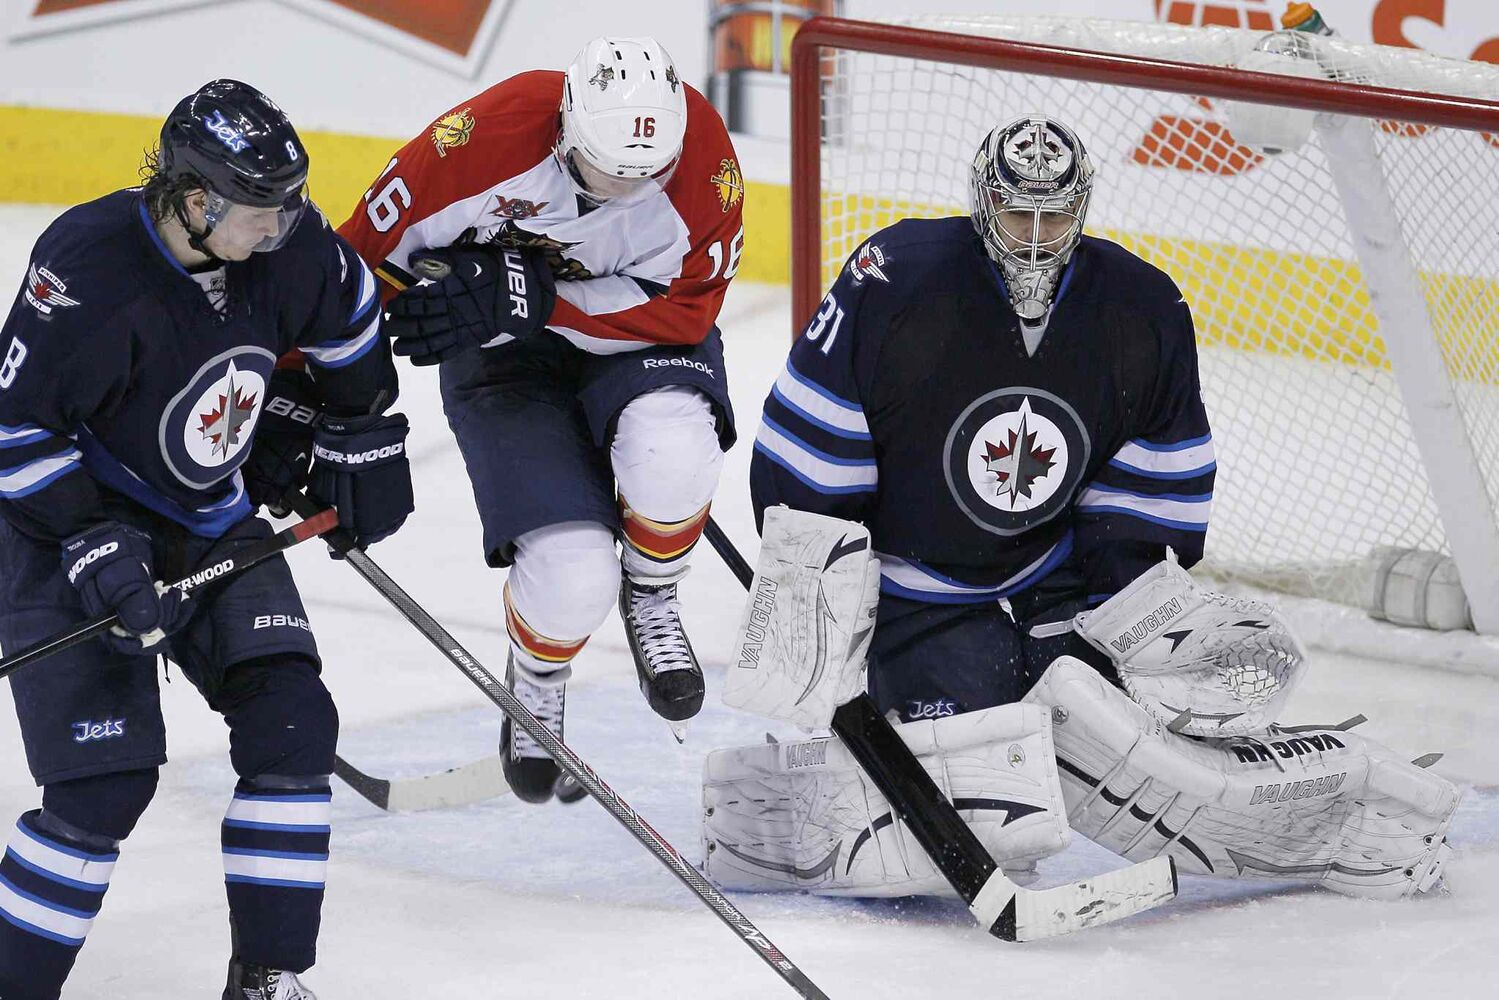 Florida Panthers' Aleksander Barkov (16) jumps to avoid the shot in front of Winnipeg Jets goaltender Ondrej Pavelec (31) as Jacob Trouba (8) looks on during the third period.